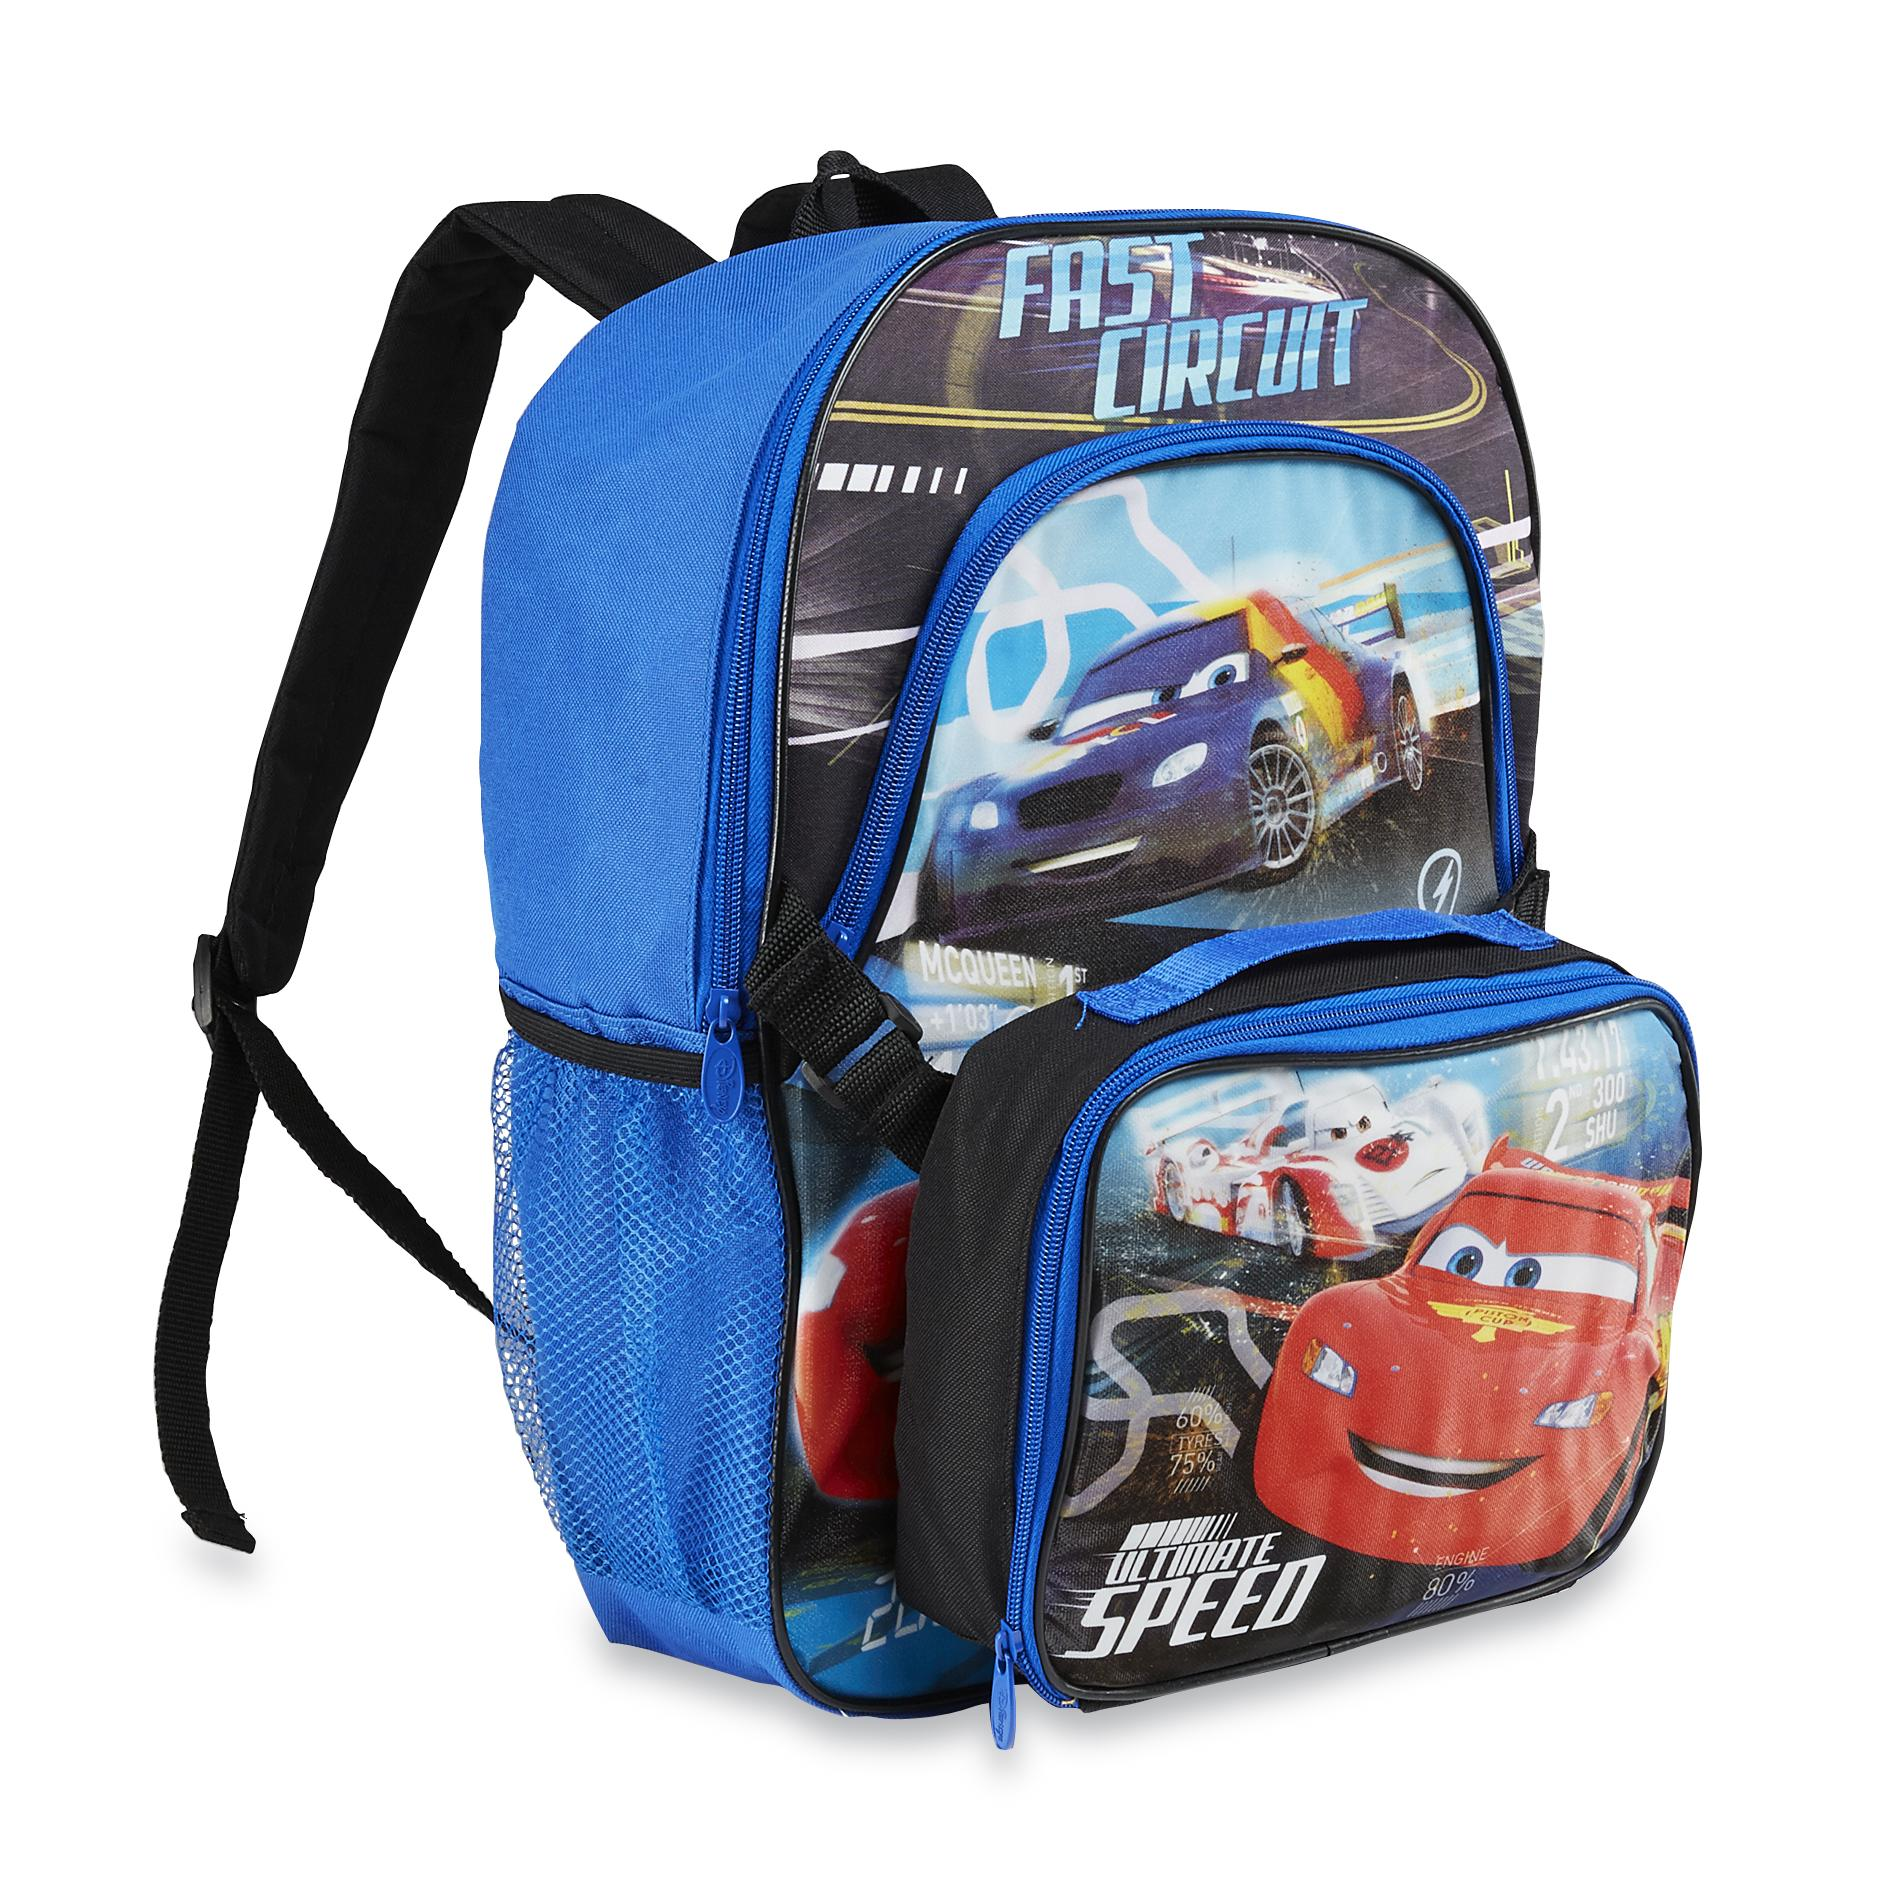 Disney Cars 2 Boy' Backpack & Lunch Bag - Lightning Mcqueen Home Luggage Travel Gear